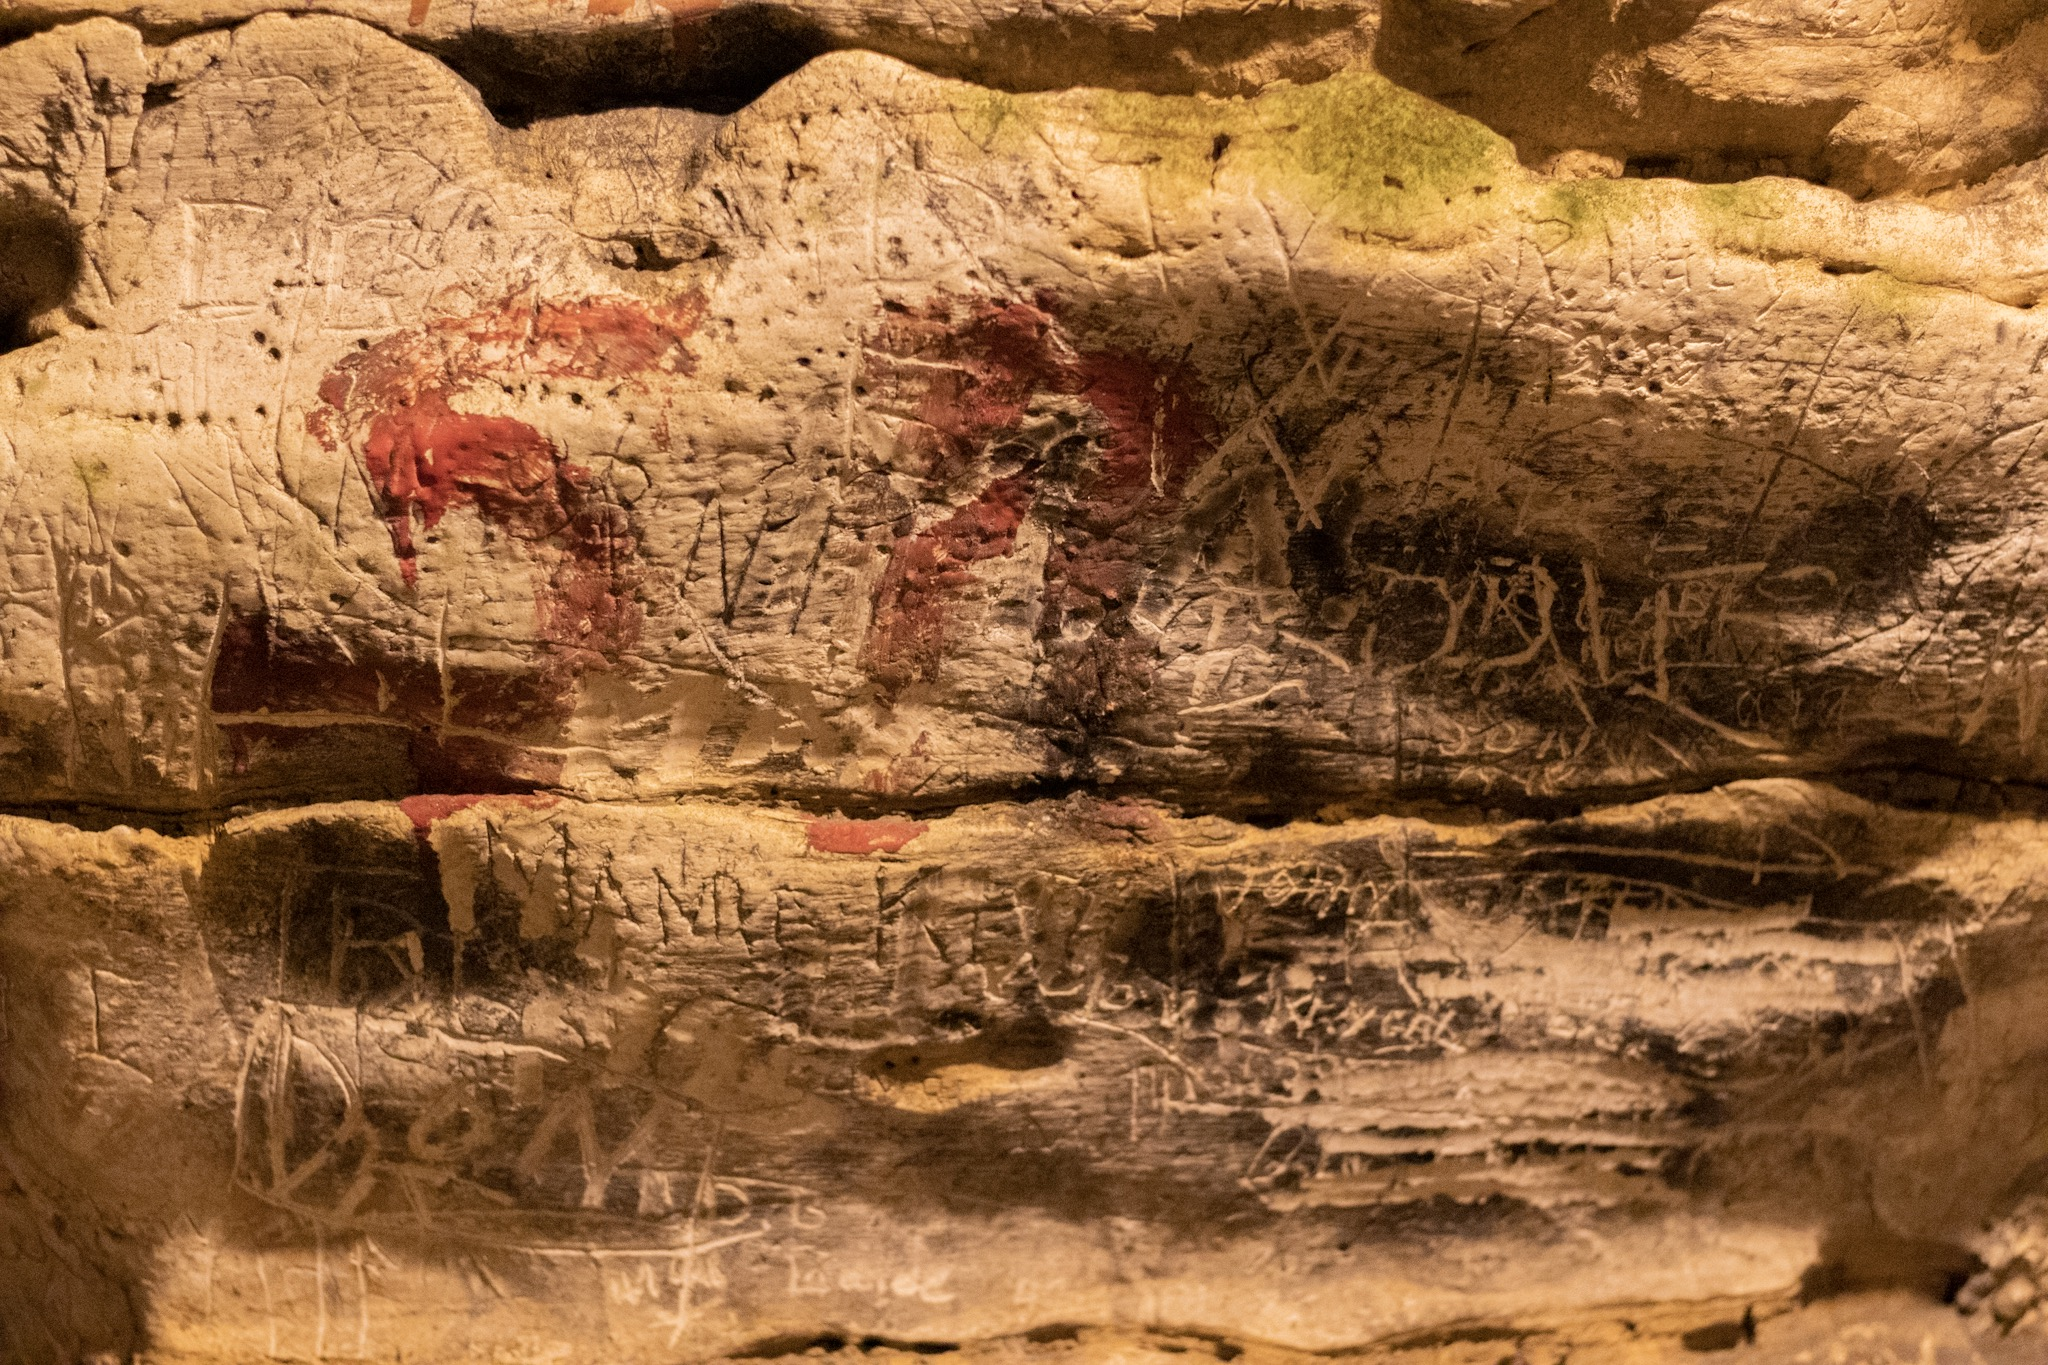 A section of cave wall containing many overlapping and inscrutable inscriptions